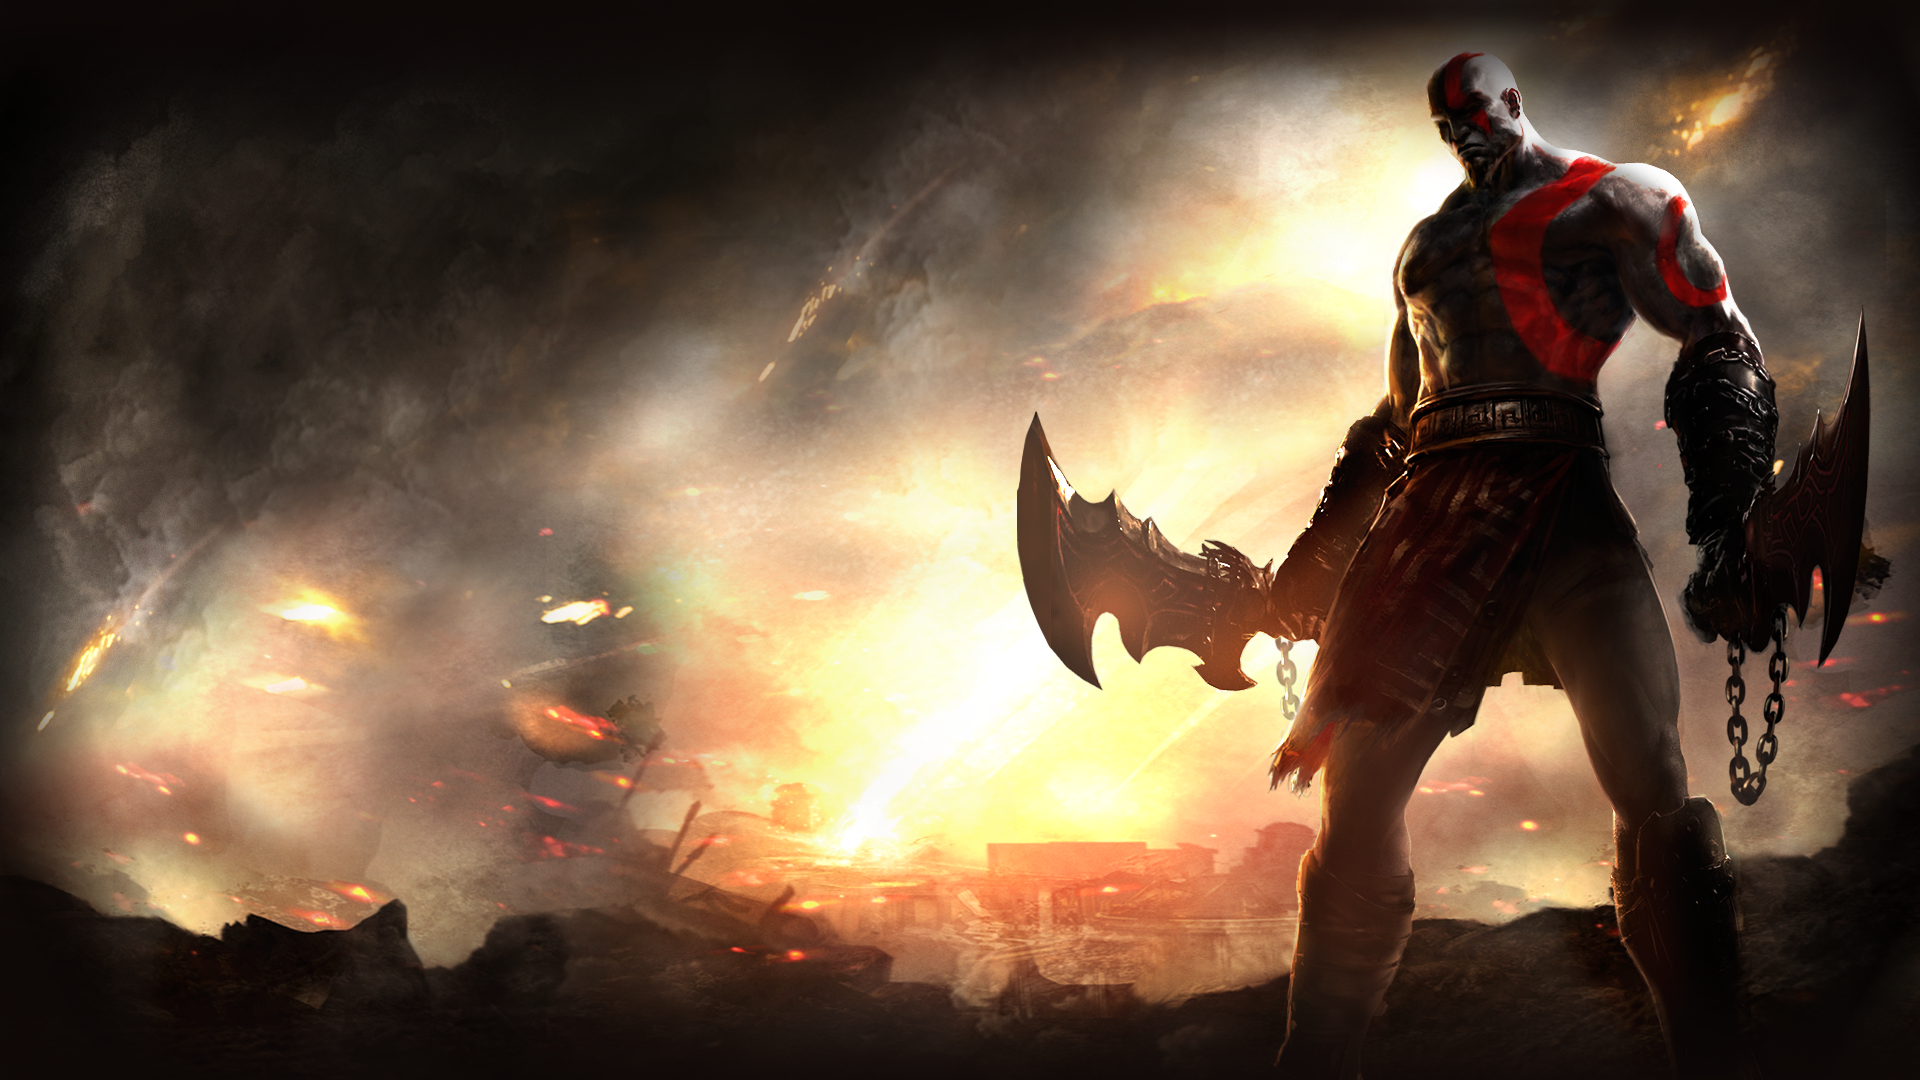 Videojuego - God Of War Fondo de Pantalla